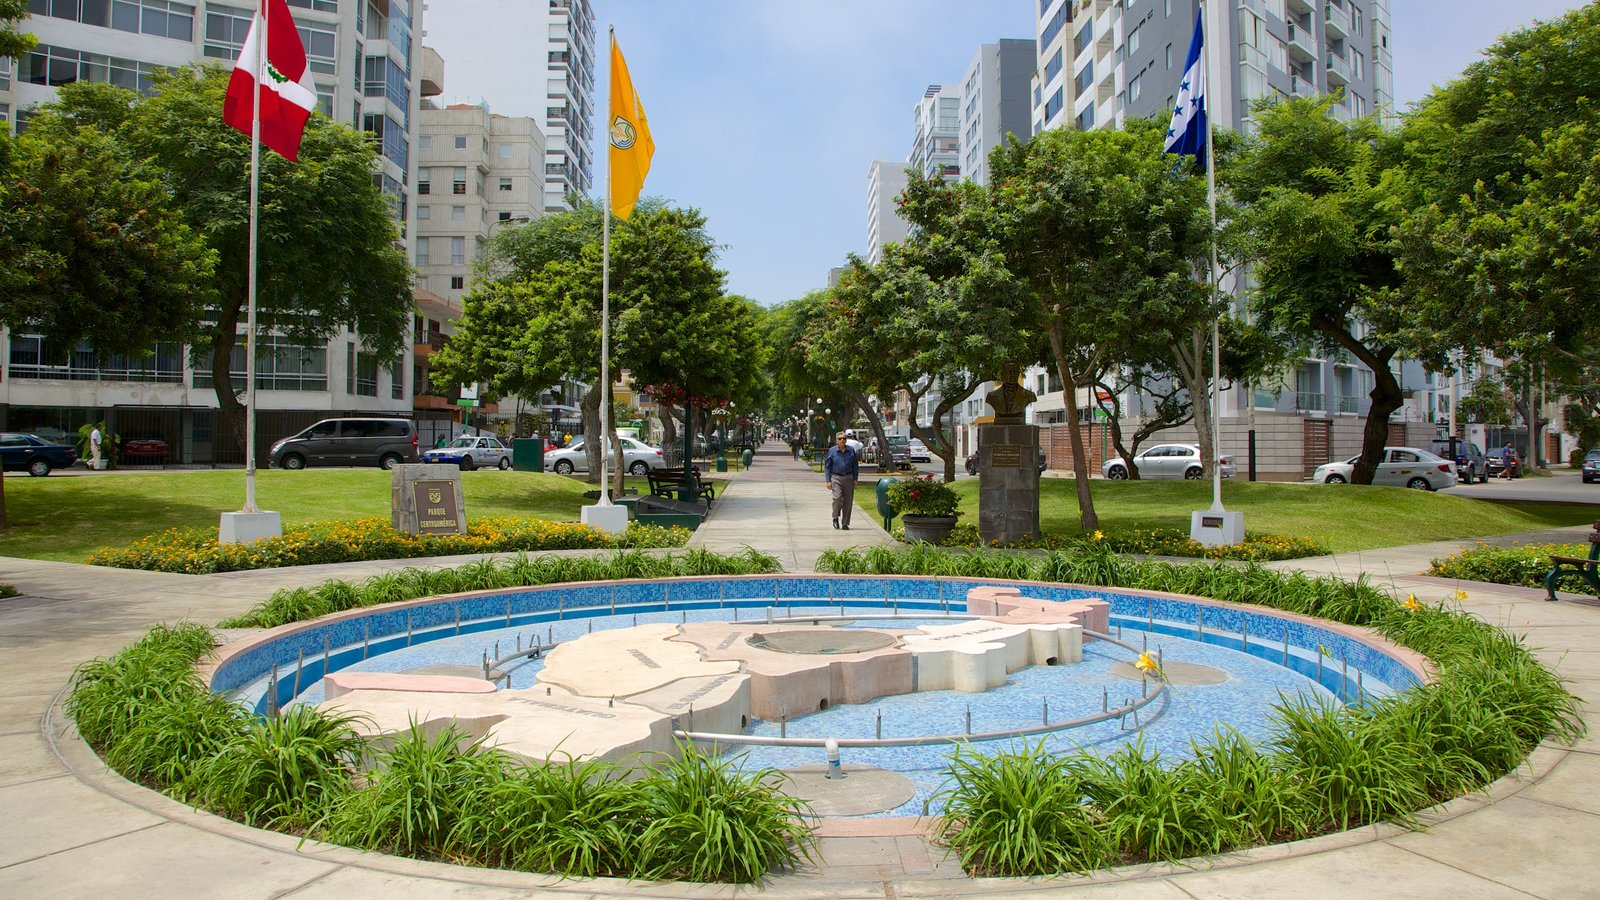 Lima which includes a city, a garden and a fountain